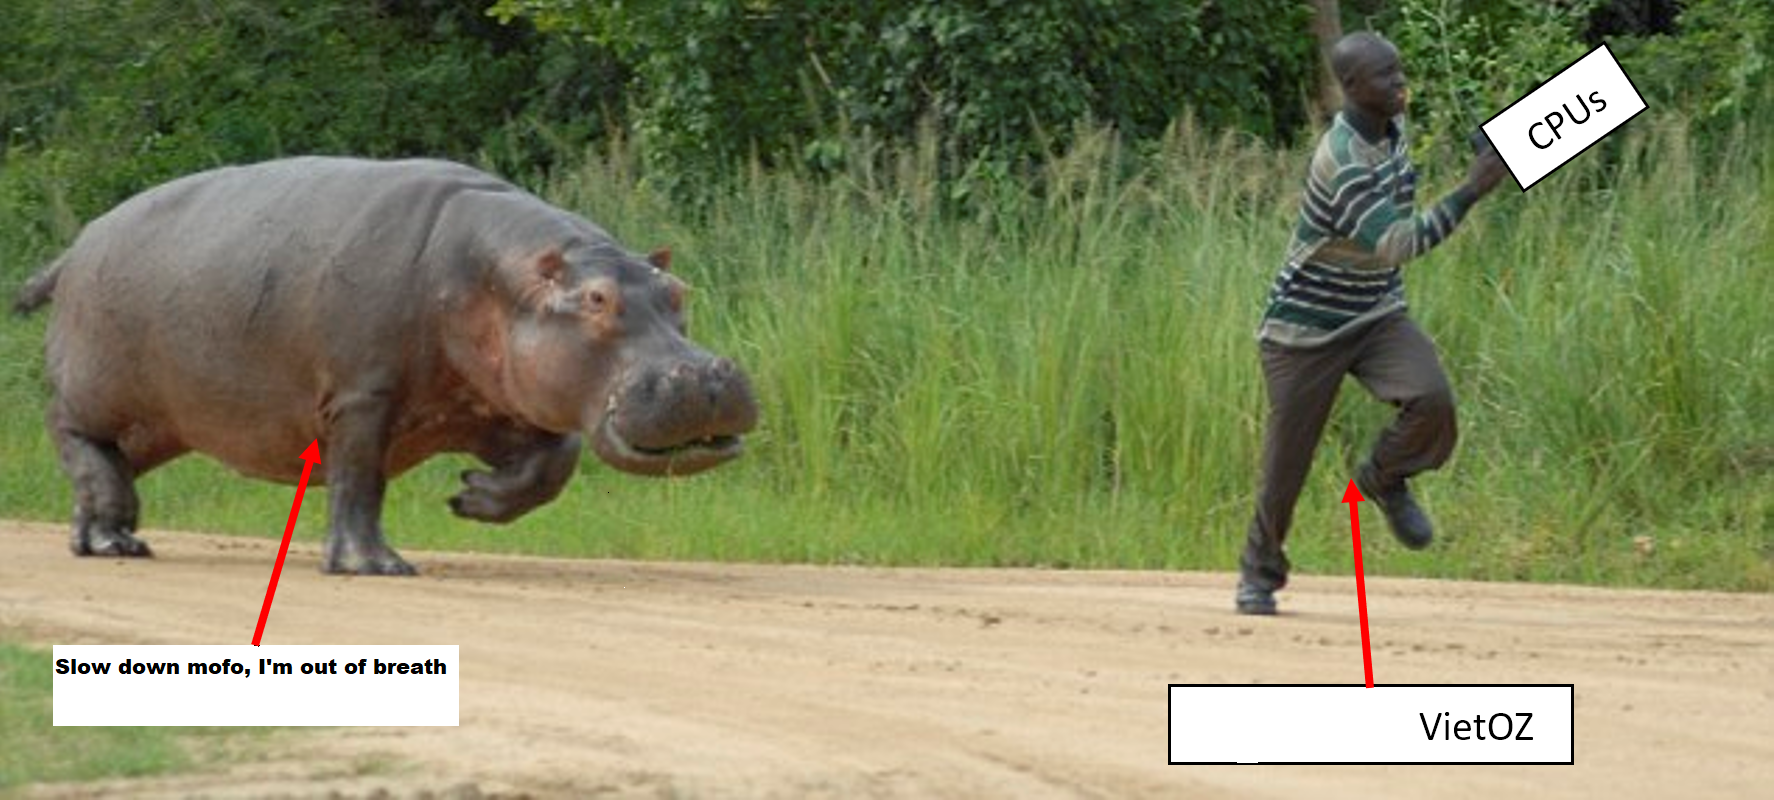 342332_CPU_Hippo.png